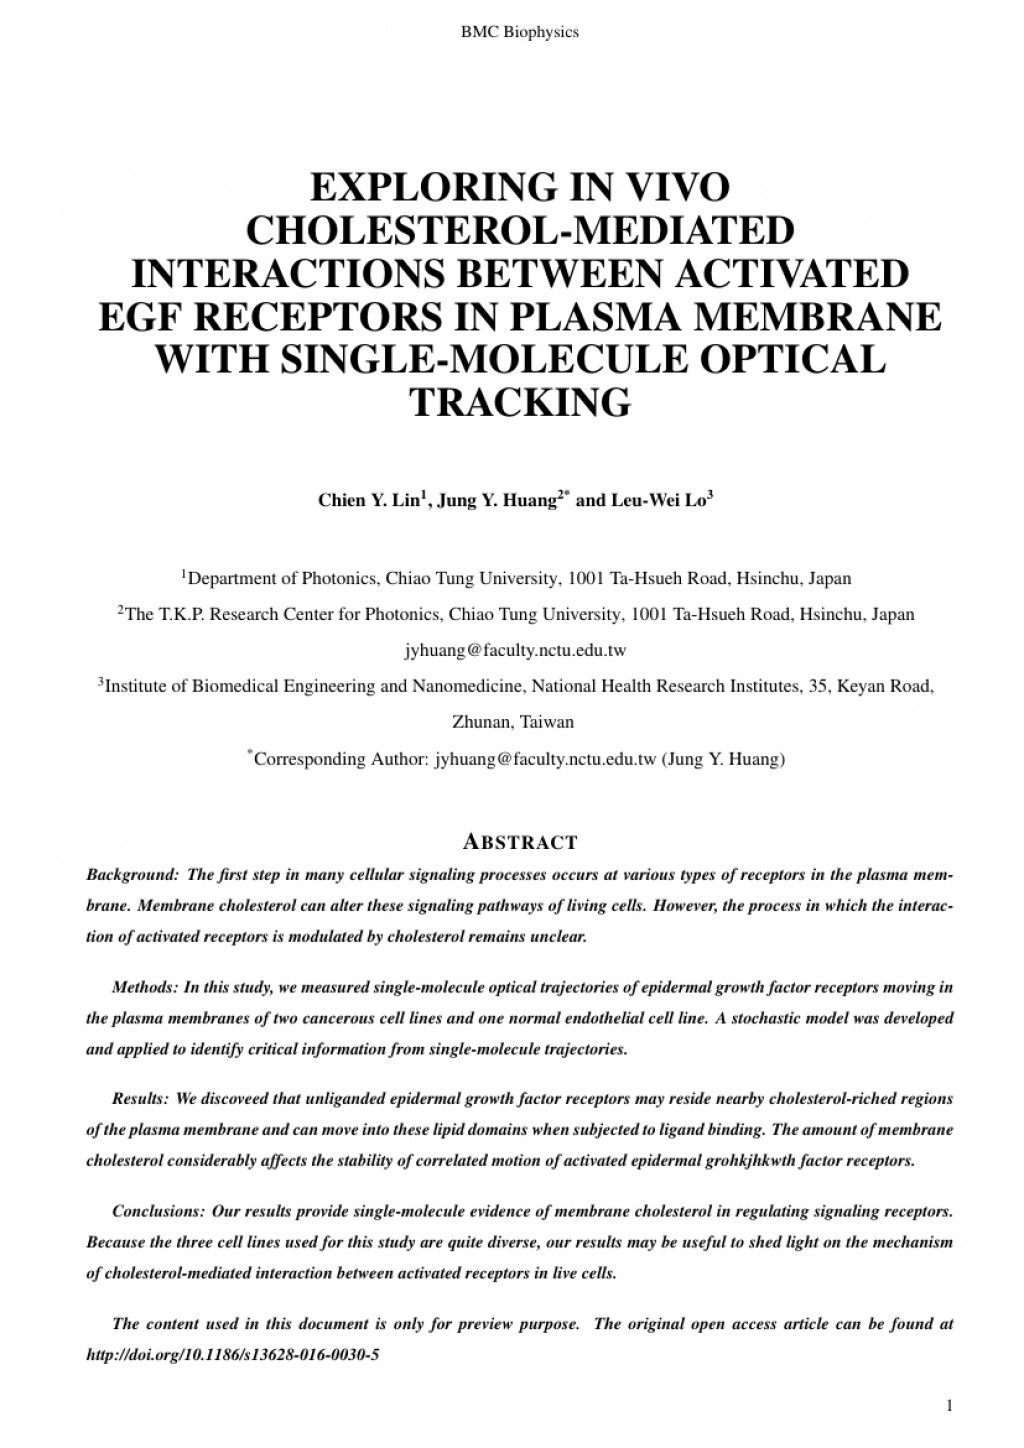 005 Article Computer Science Research Paper Publishing Sensational Journals Large